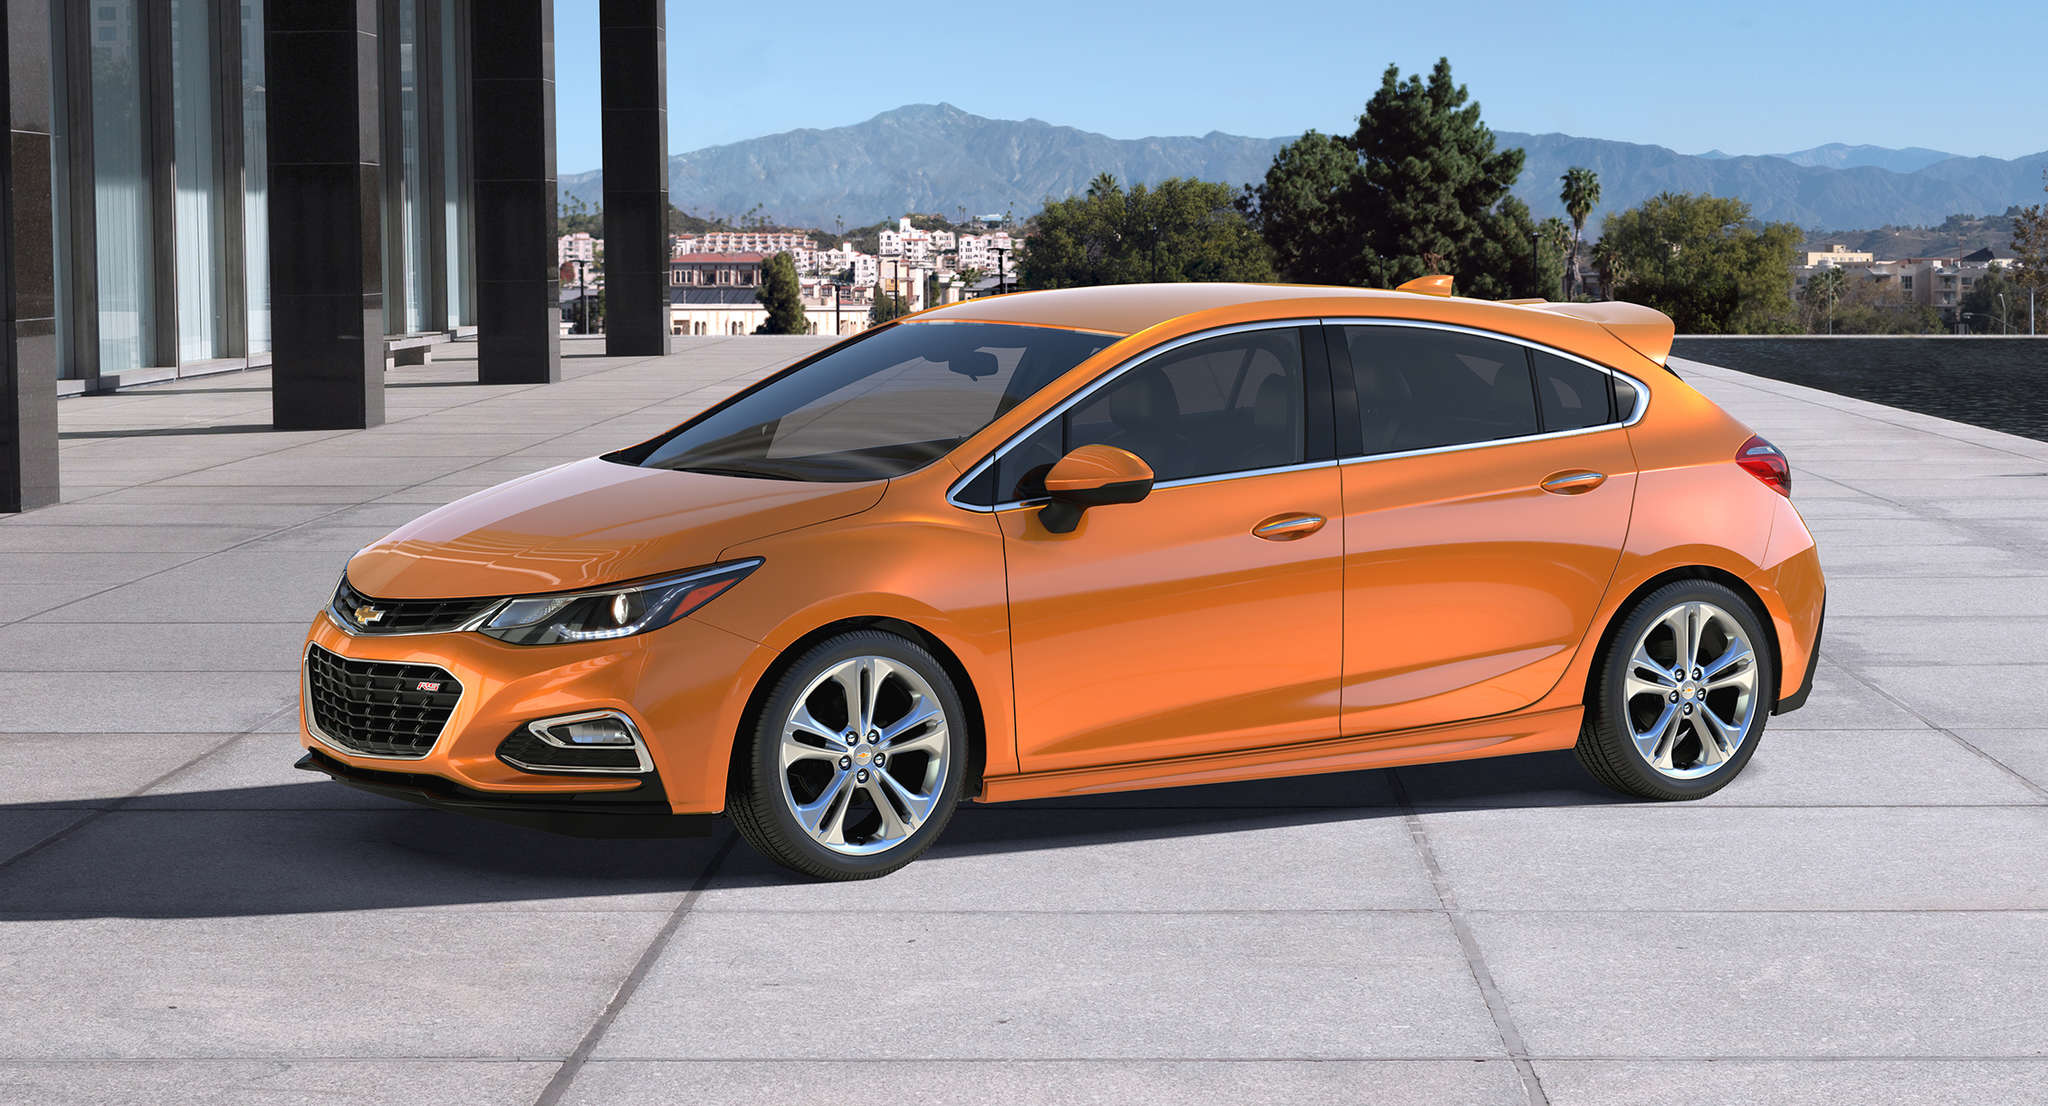 The 2017 Chevrolet Cruze Hatch, made south of the border, is a looker, but will a non-hatchback crowd in the U.S. be won over?